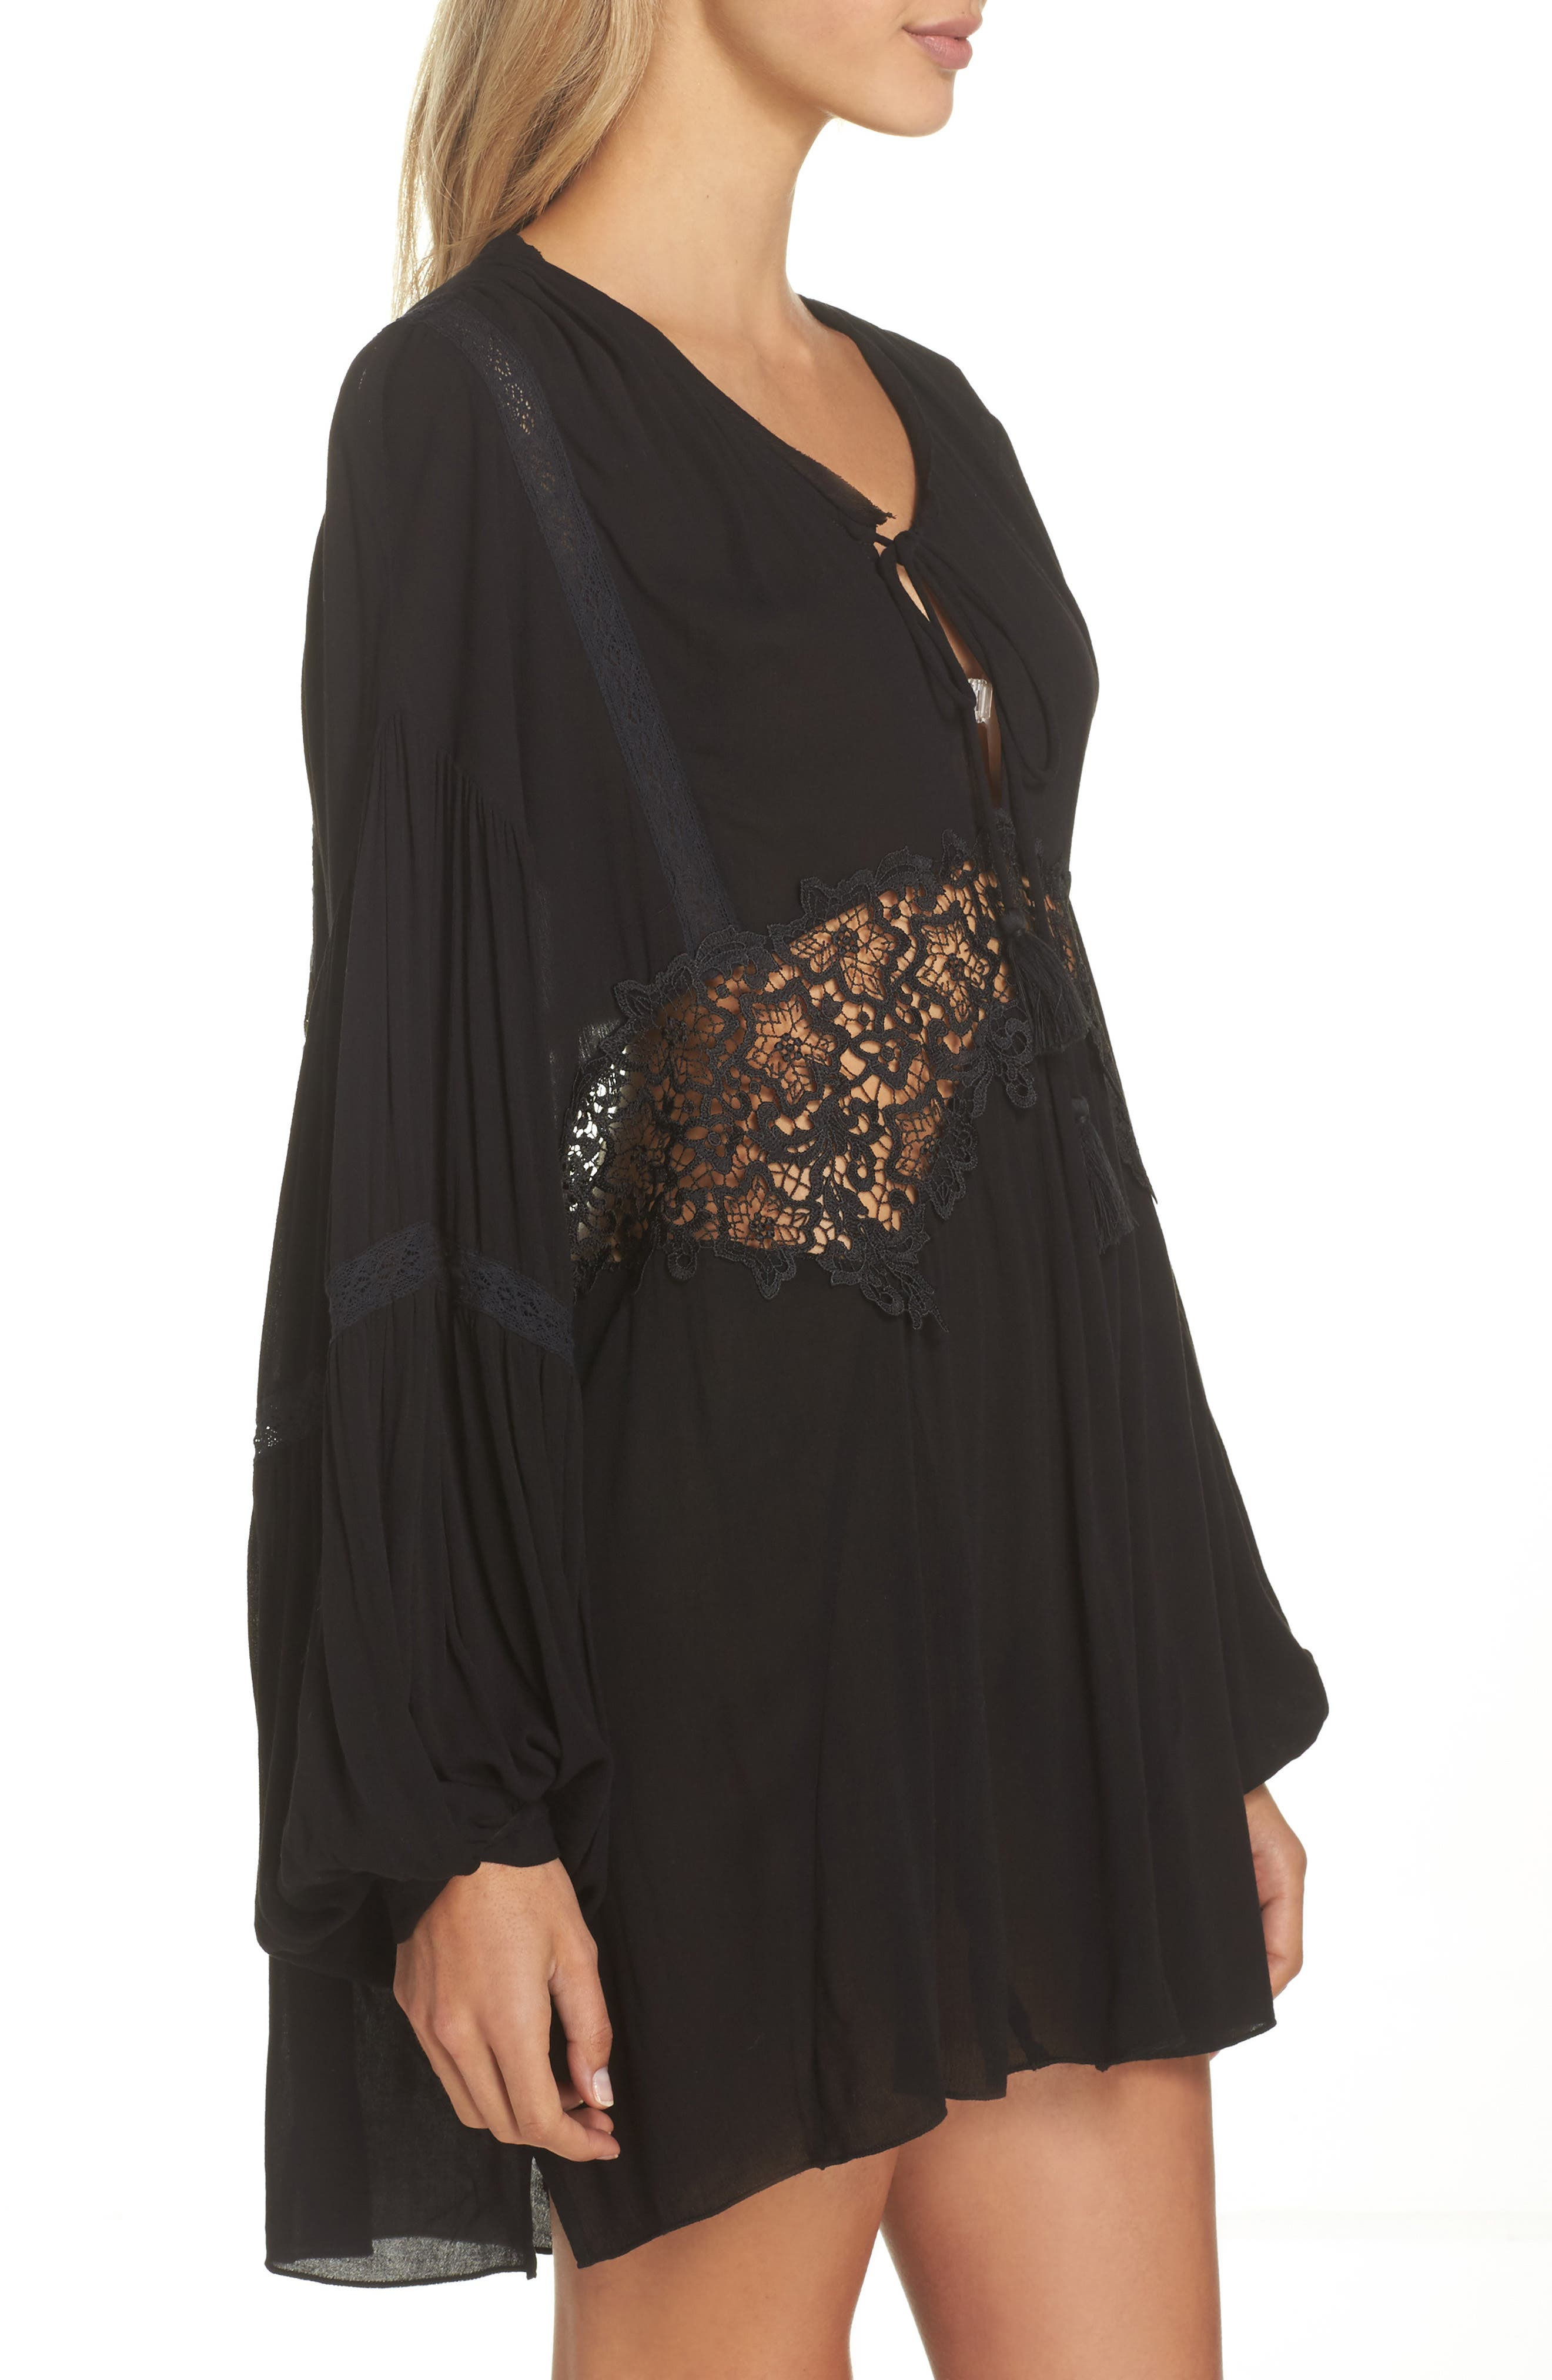 Alternate Image 3  - Free People Intimately FP Sleepin' 'n' Dreamin' Lace Inset Top